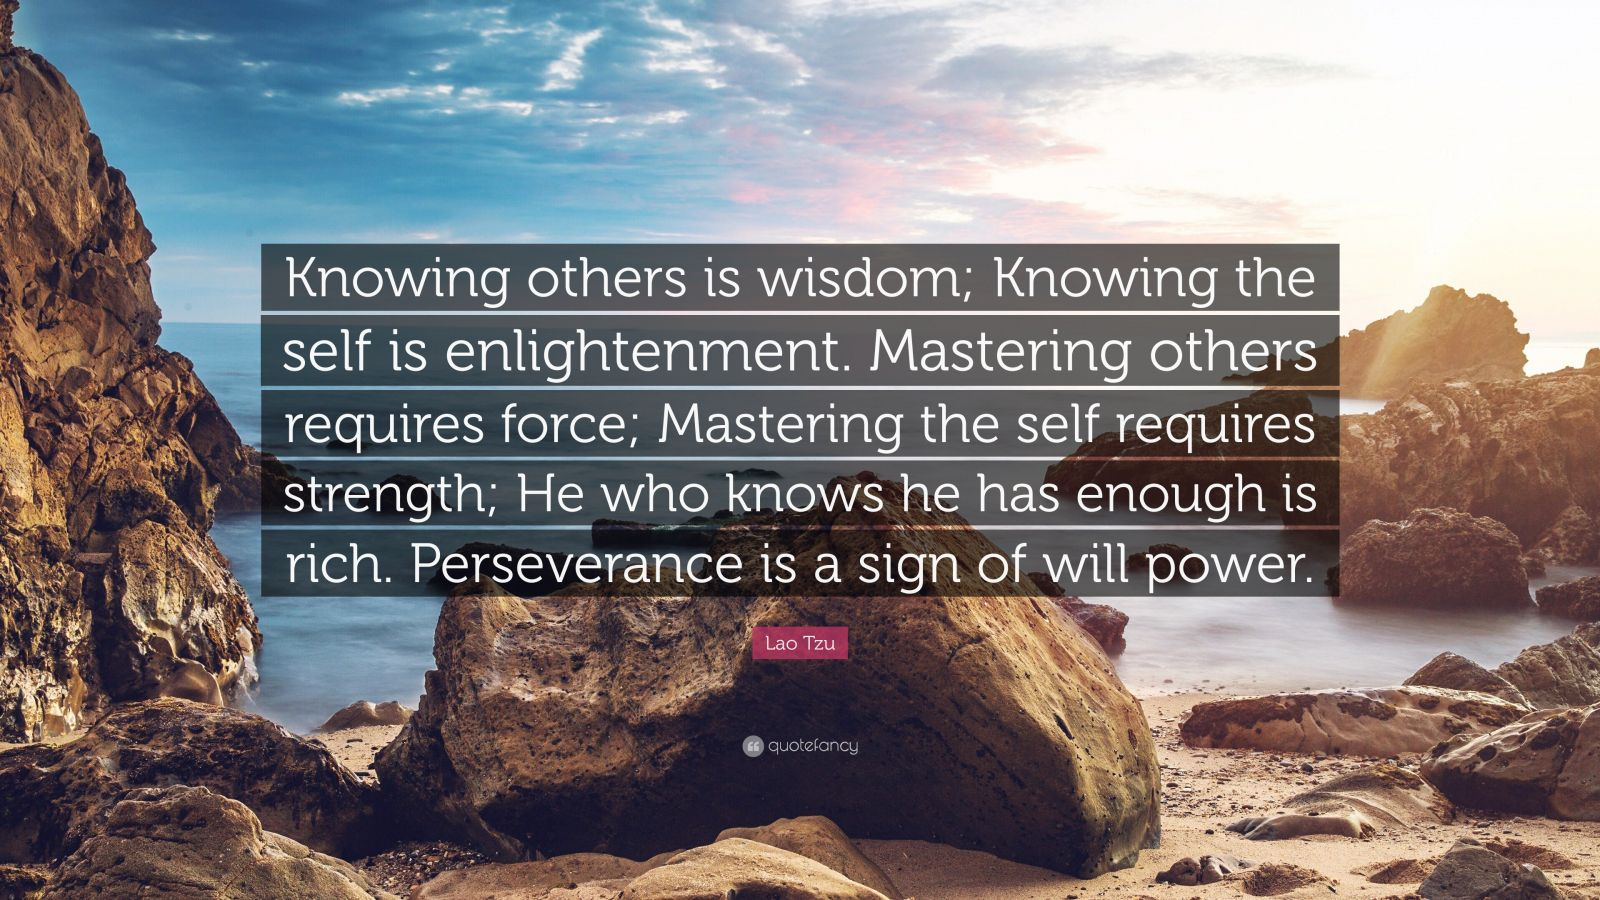 "Lao Tzu Quote: ""Knowing others is wisdom; Knowing the self is enlightenment. Mastering others requires force; Mastering the self requires strength; He who knows he has enough is rich. Perseverance is a sign of will power."""